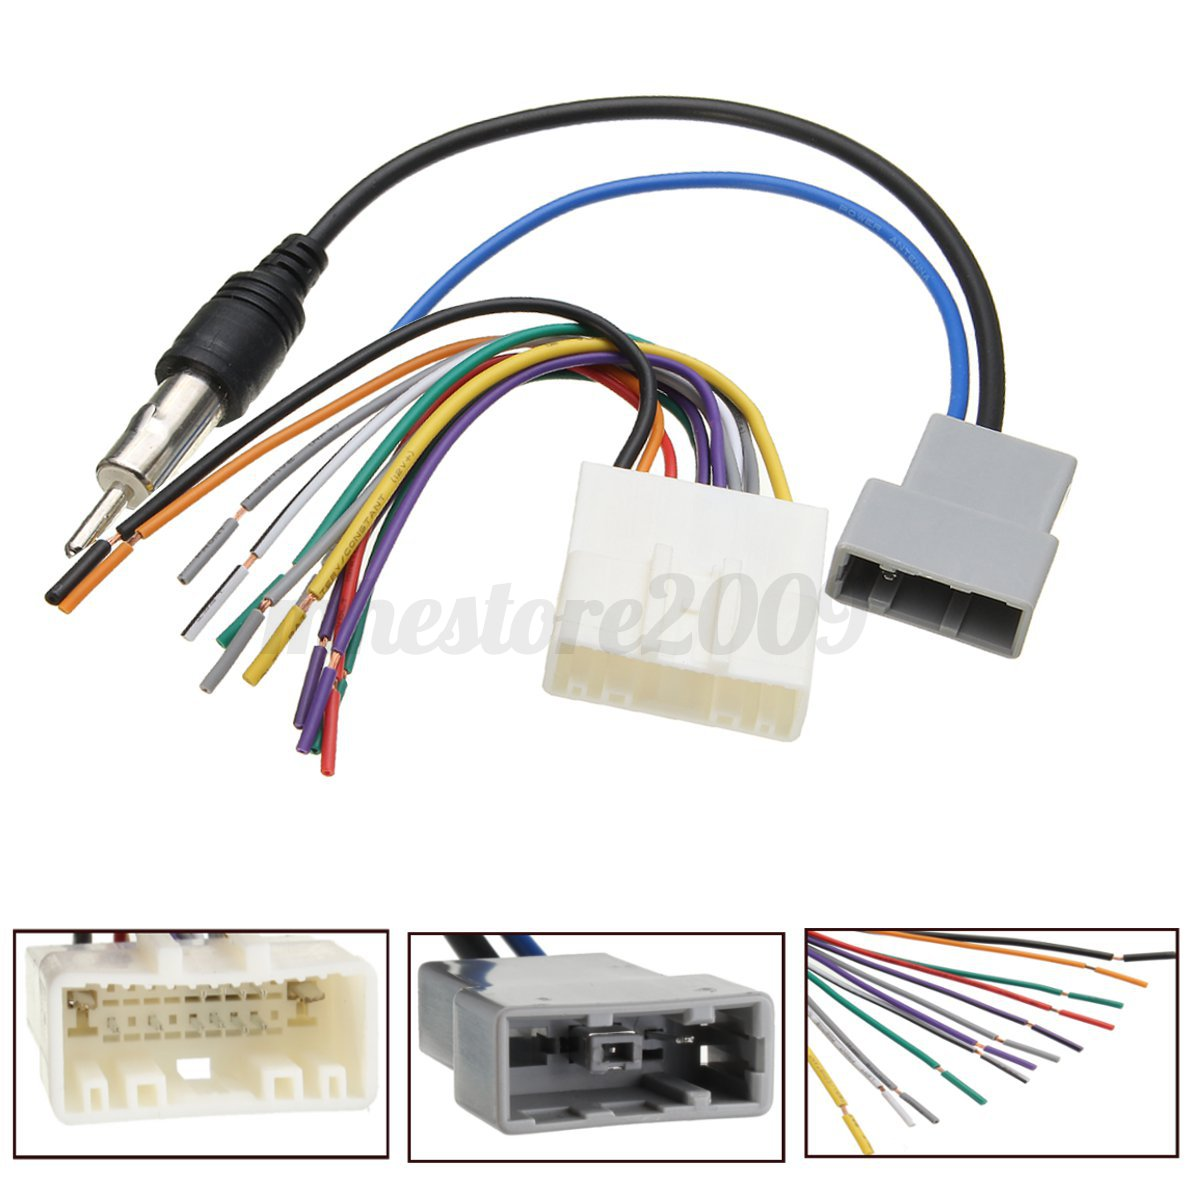 radio plug wiring diagram automobile alternator car dvd install stereo wire harness cable plugs